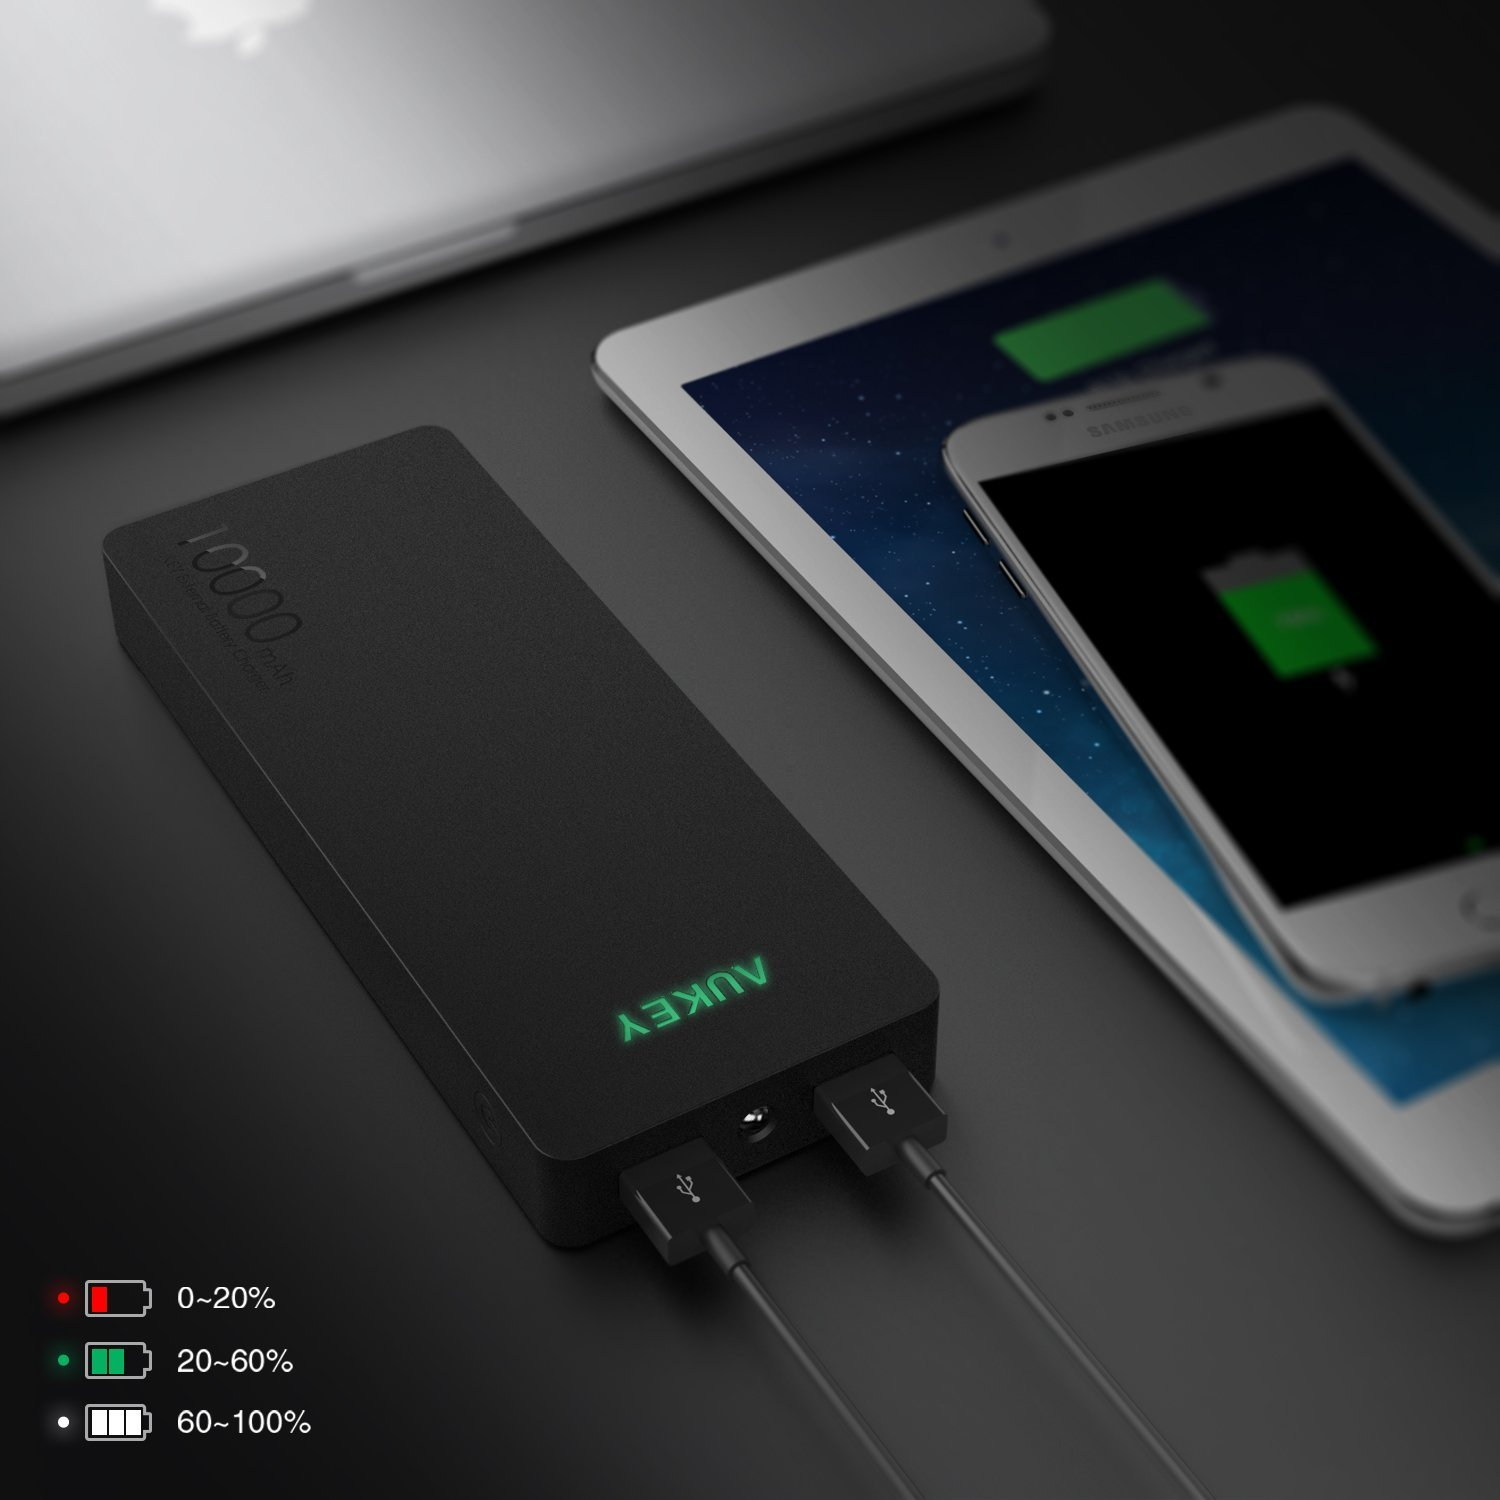 Aukey 10000mah Quick Charge 20 External Battery Can Pa U28 Turbo Charger 18w Fastcharging